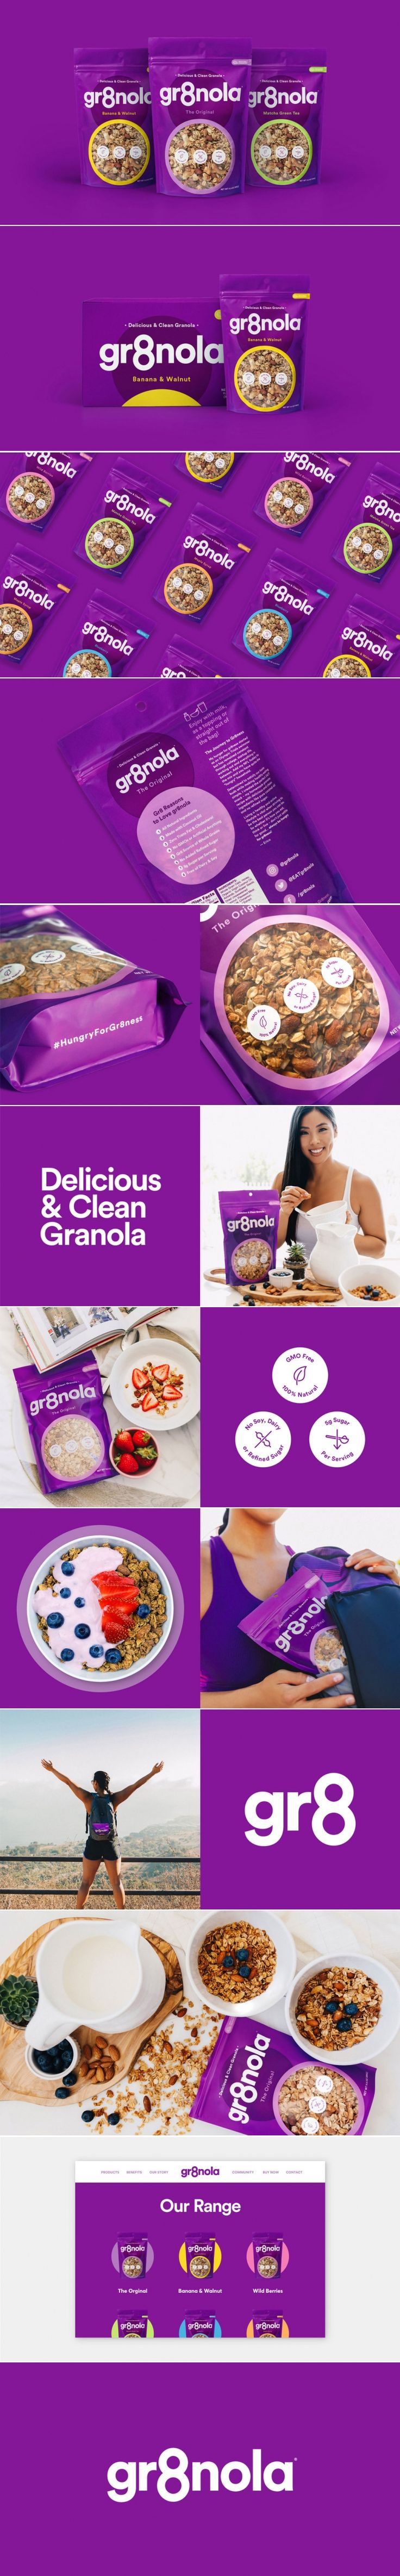 Get Your Day Started Right With Gr8nola — The Dieline | Packaging & Branding Design & Innovation News